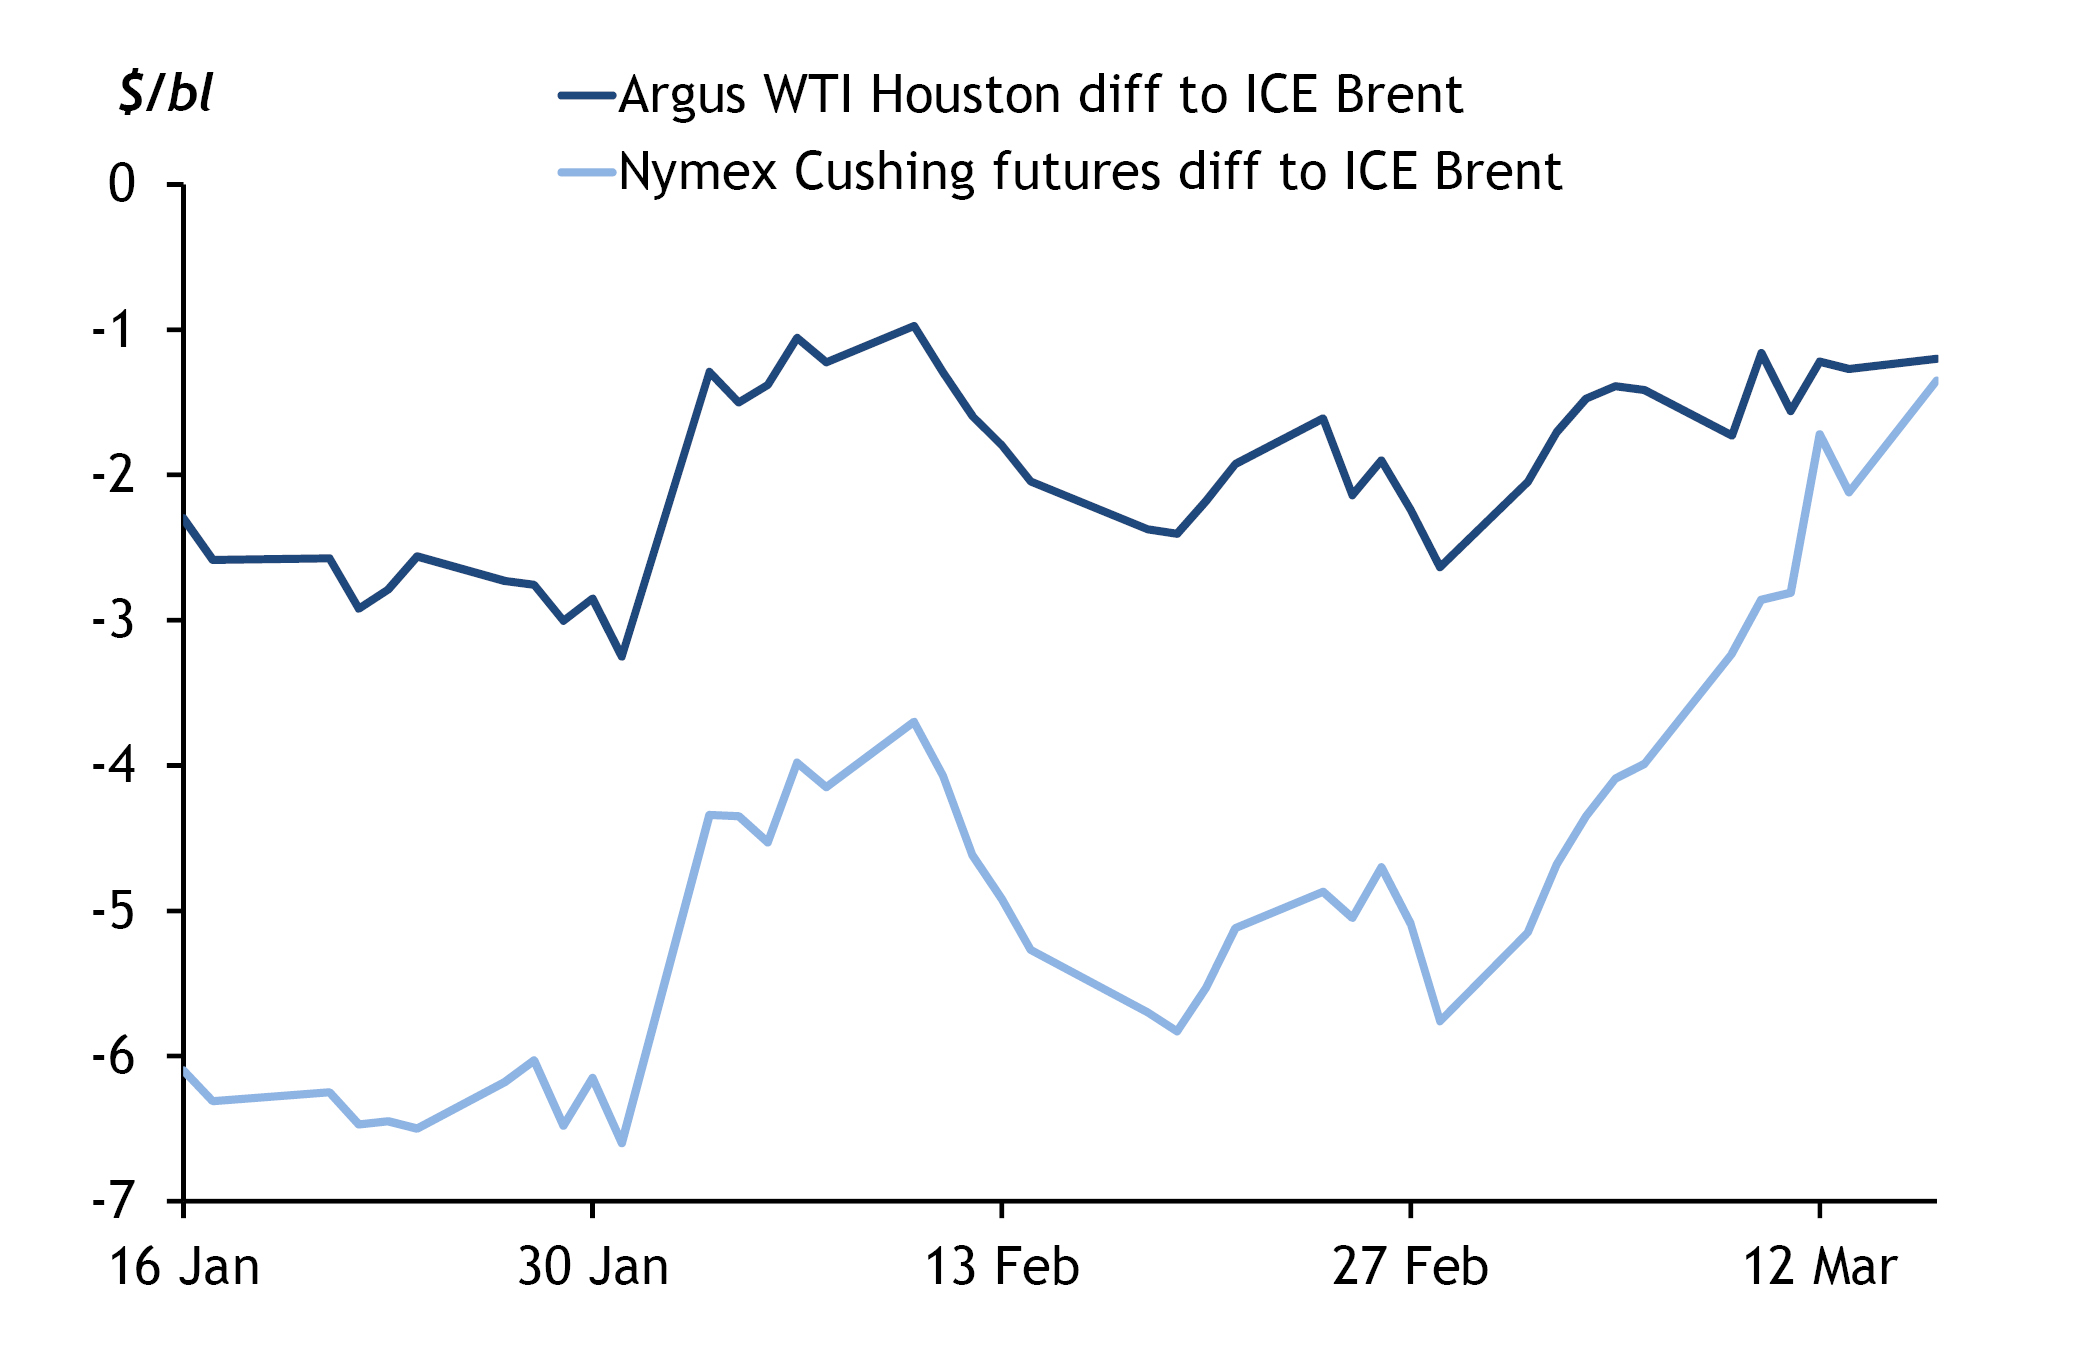 Nymex Cushing Futures and Argus WTI Houston vs Ice Brent